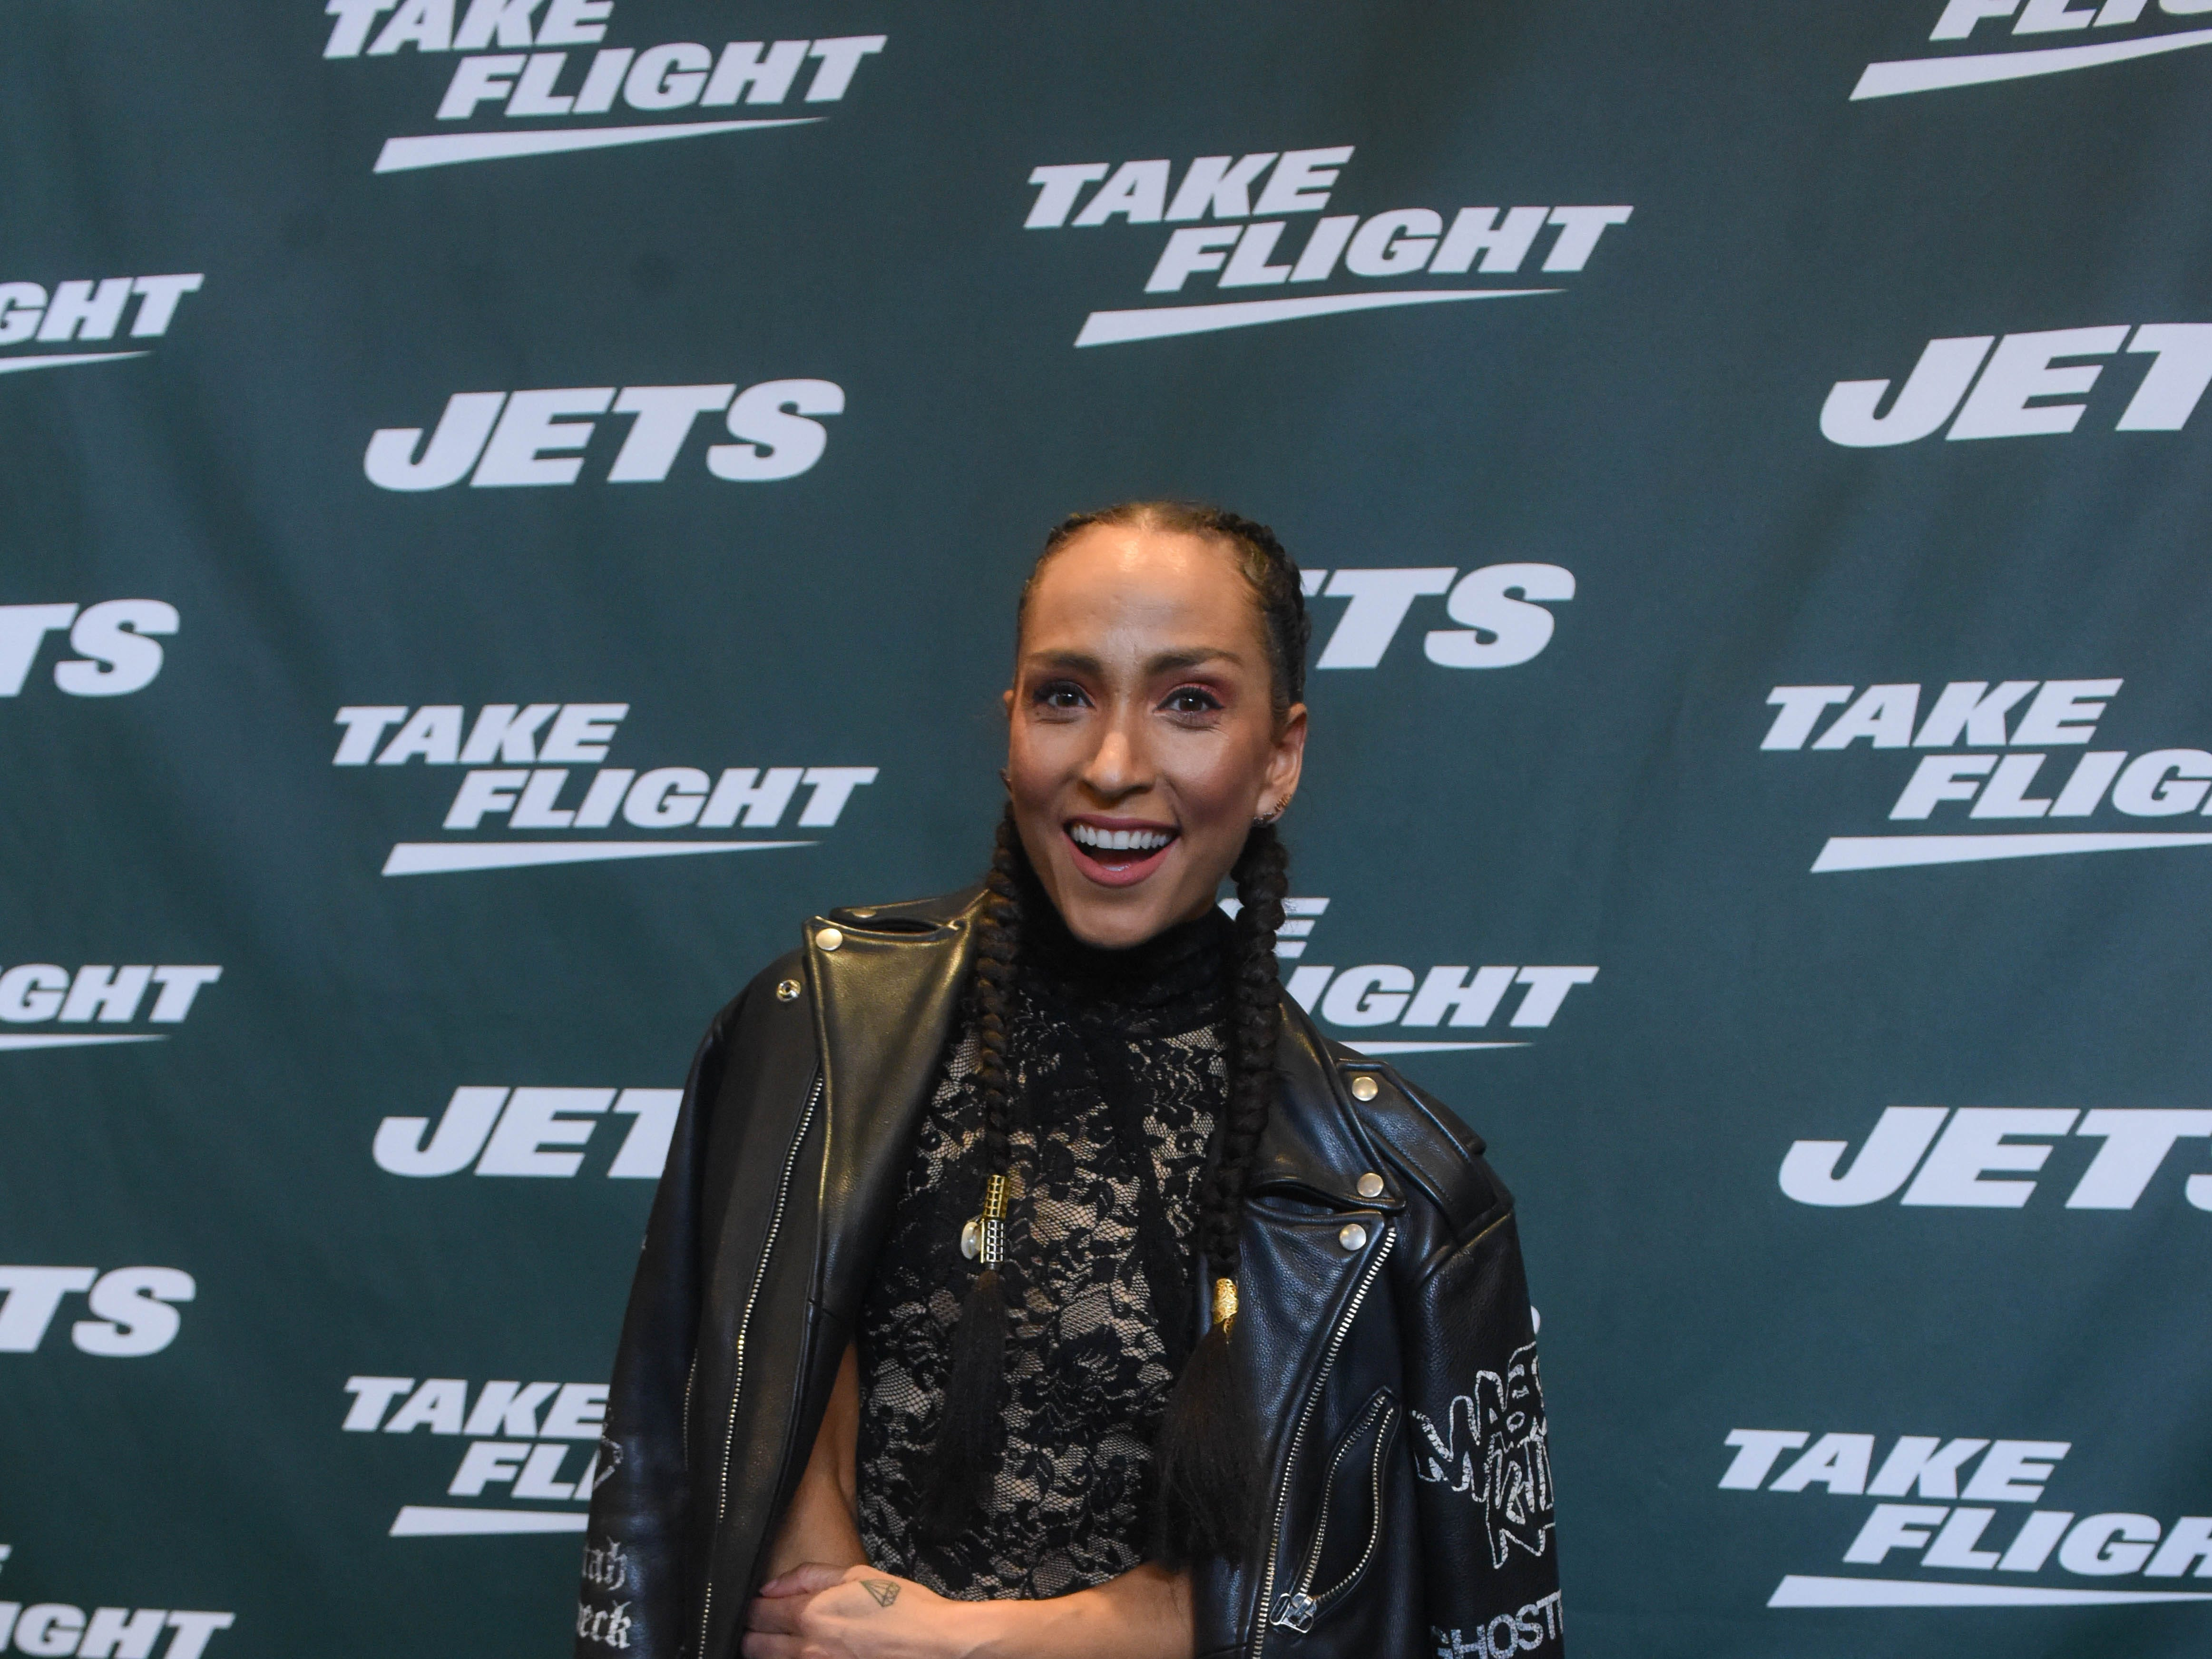 Robin Arzon (Author). The NY Jets unveiled their new football uniforms with an event hosted by JB Smoove at Gotham Hall in New York. 04/05/2019